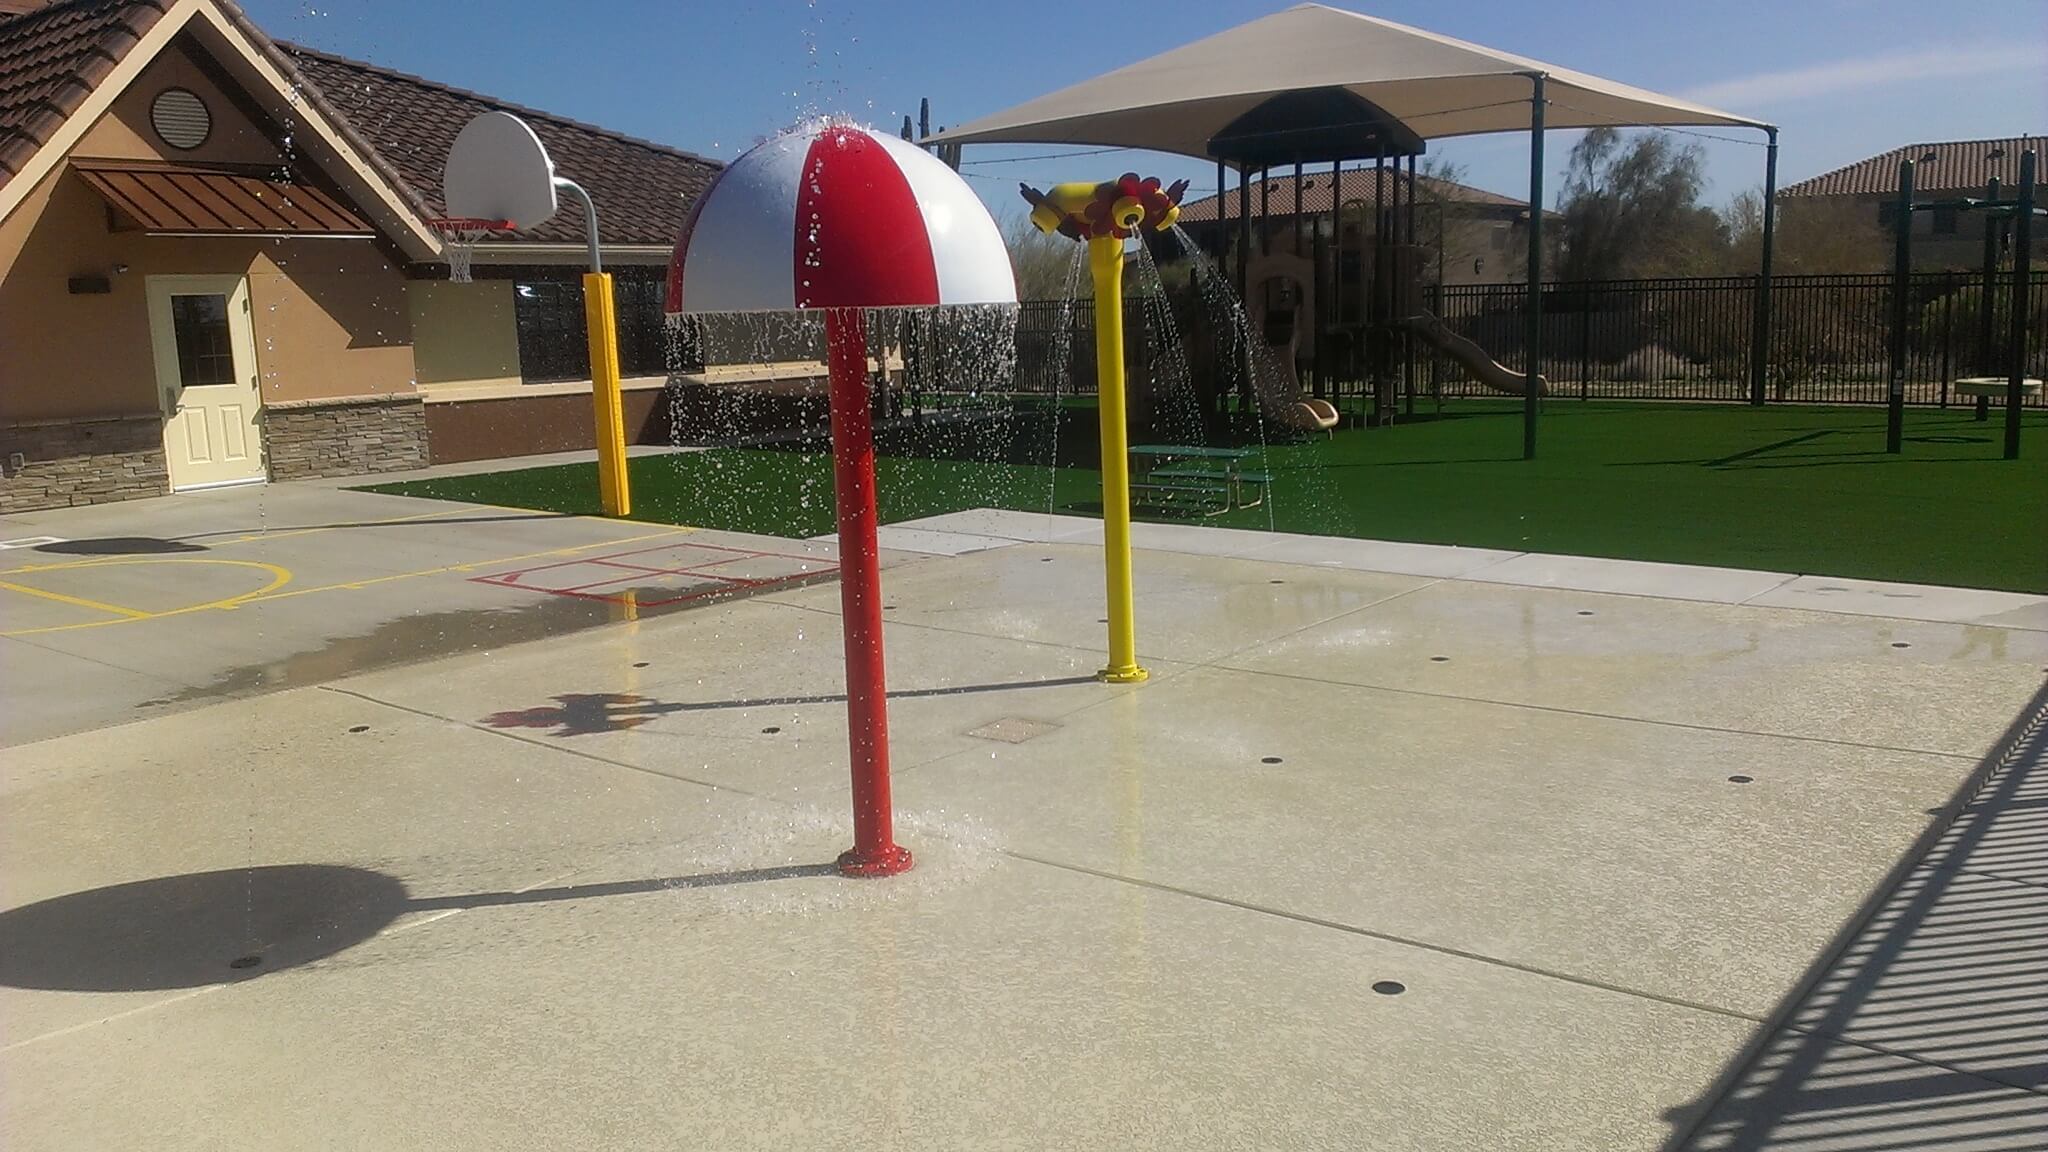 An awesome splash pad located in the Peoria area.